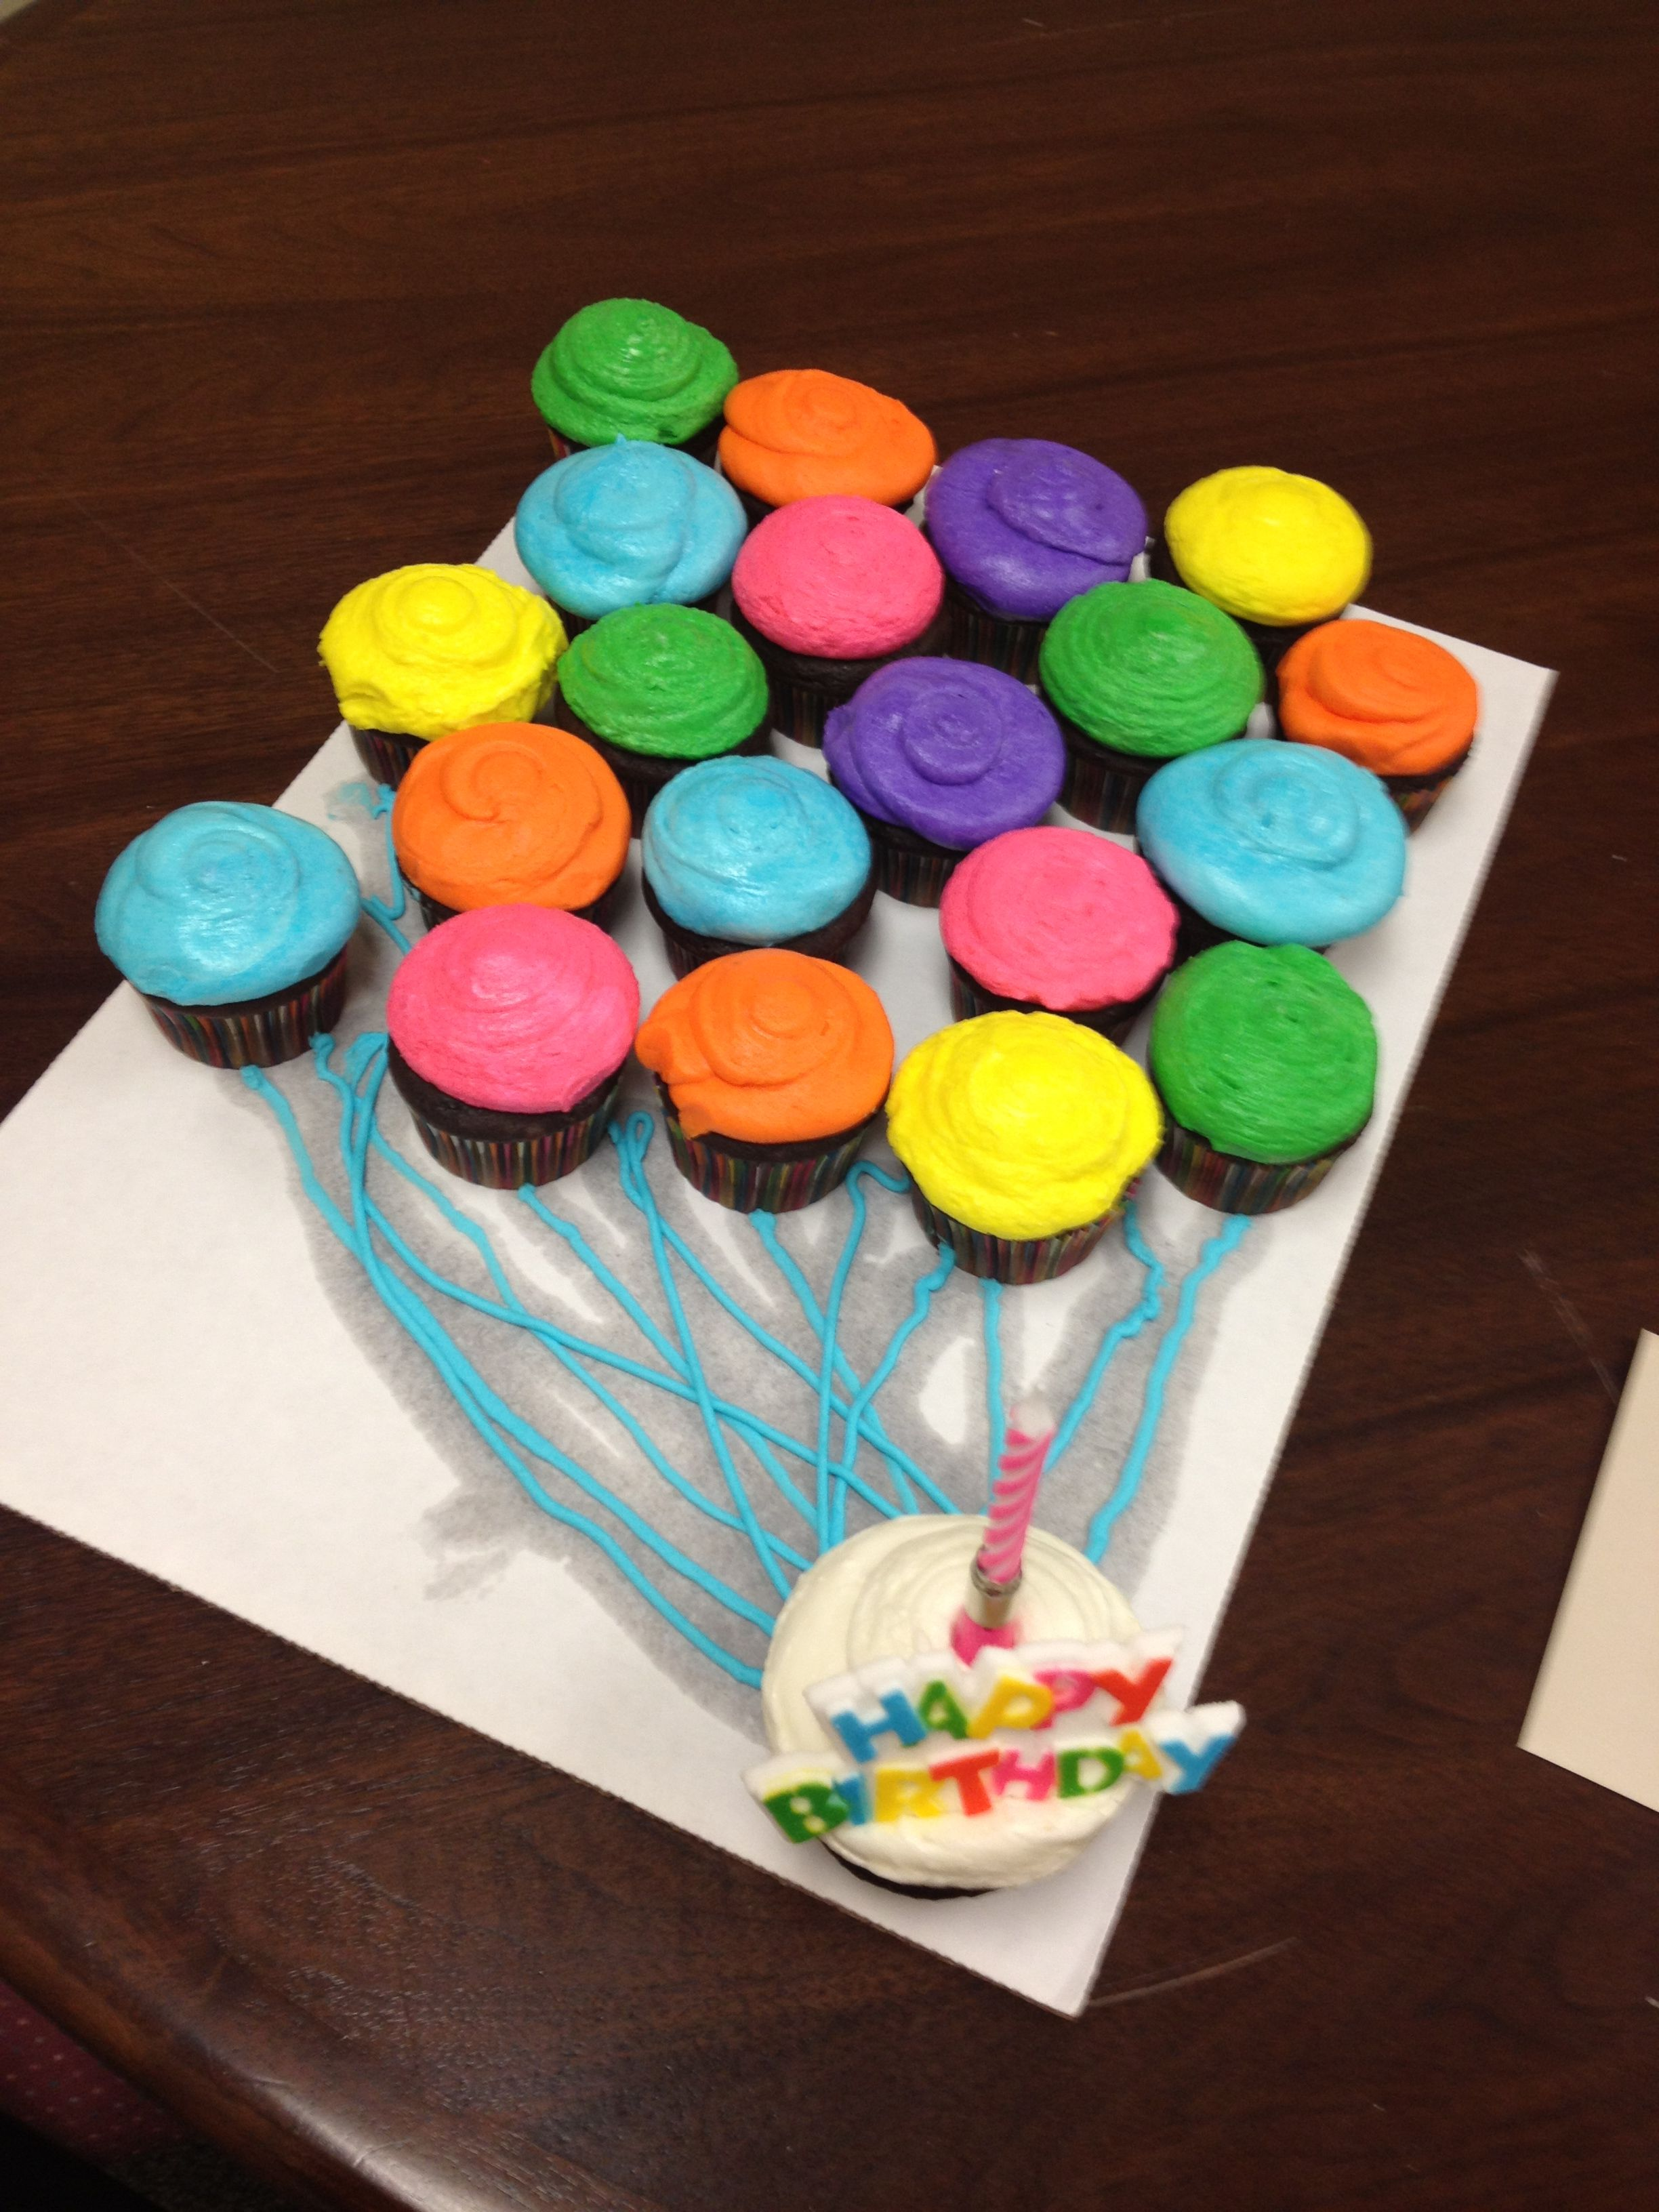 Cupcake balloon bouquet I made for bosses birthday. Boss